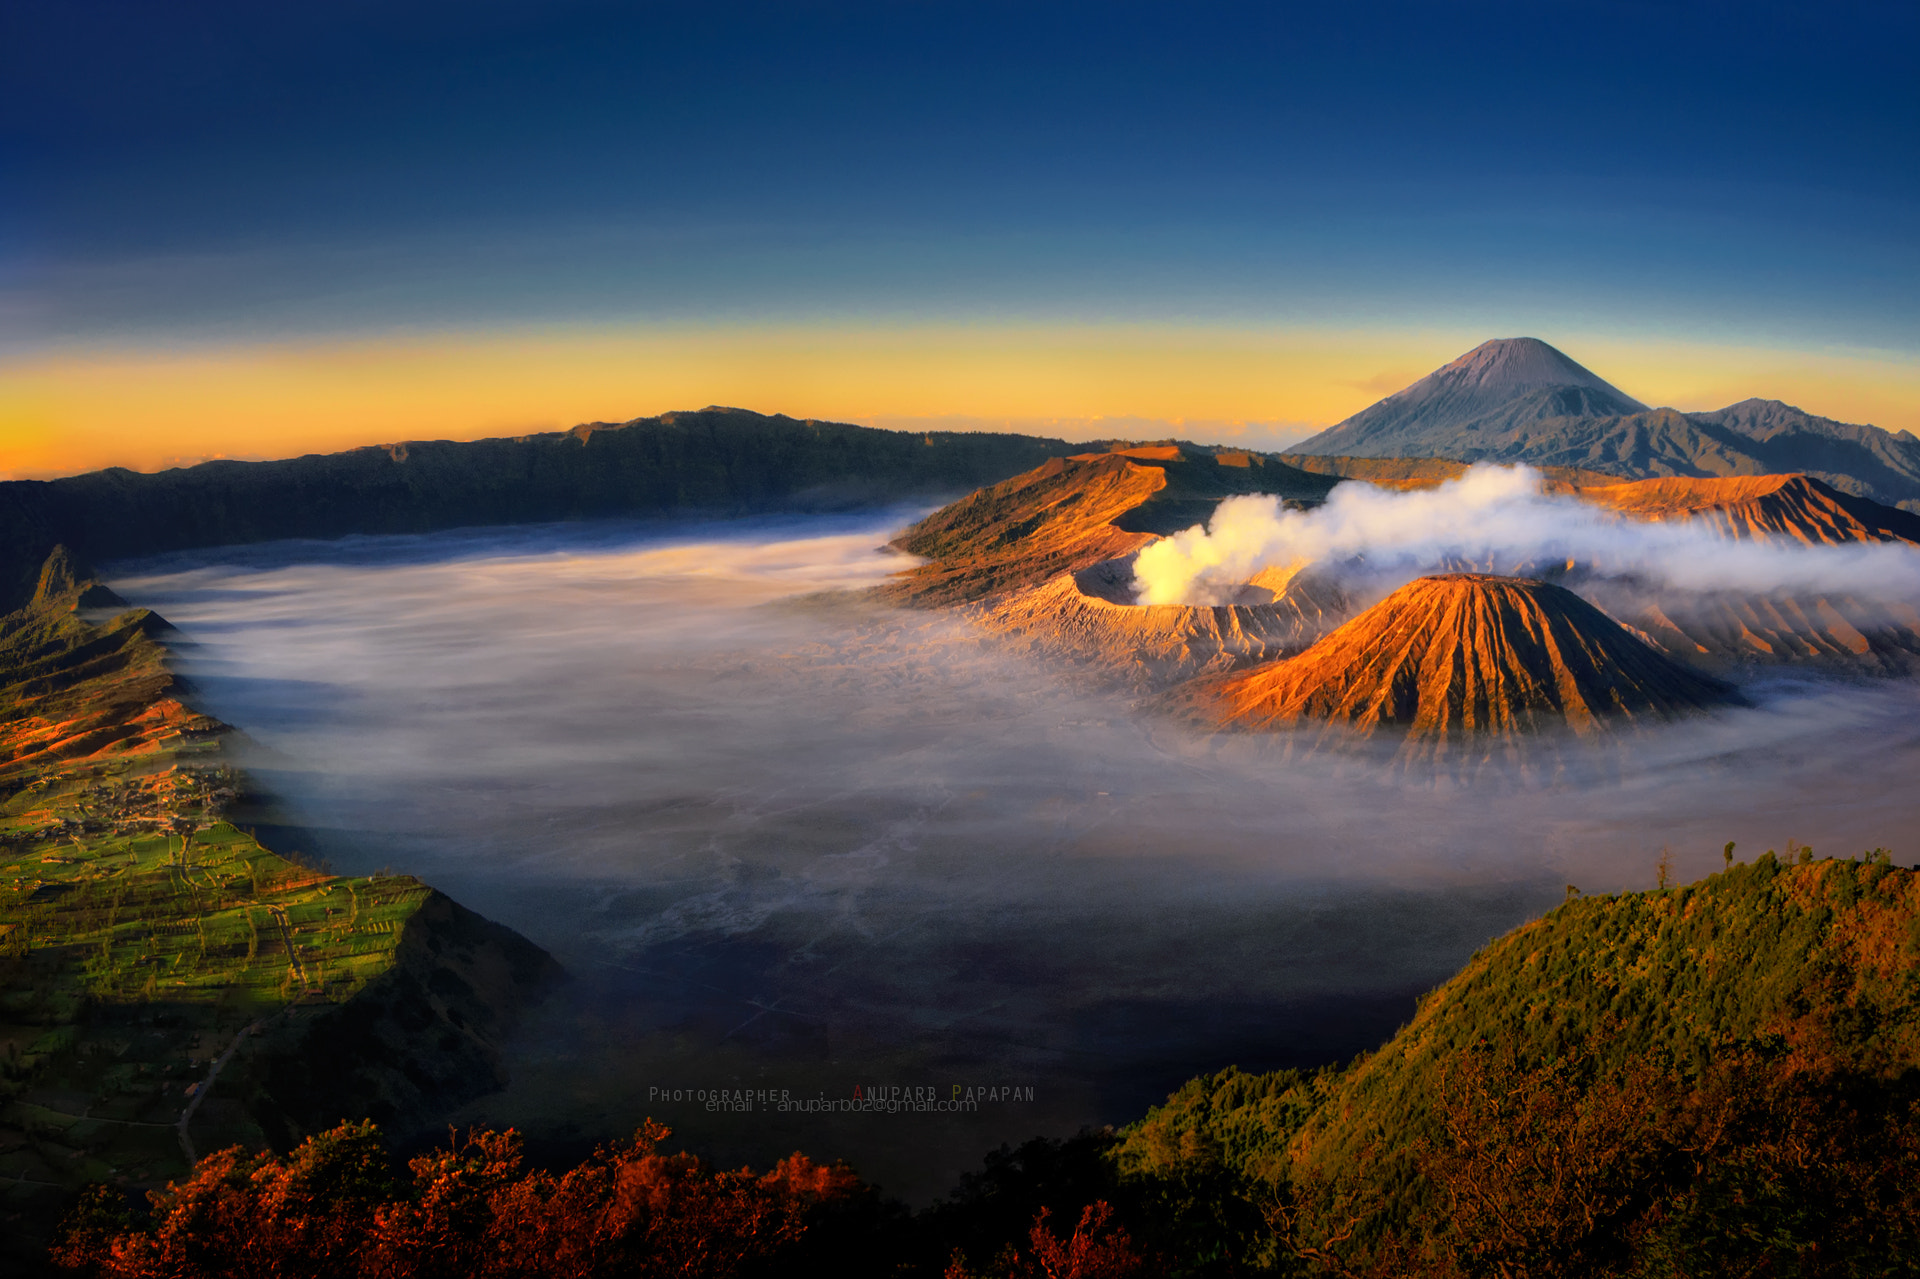 Photograph Good Morning Mt. Bromo by Anuparb Papapan on 500px